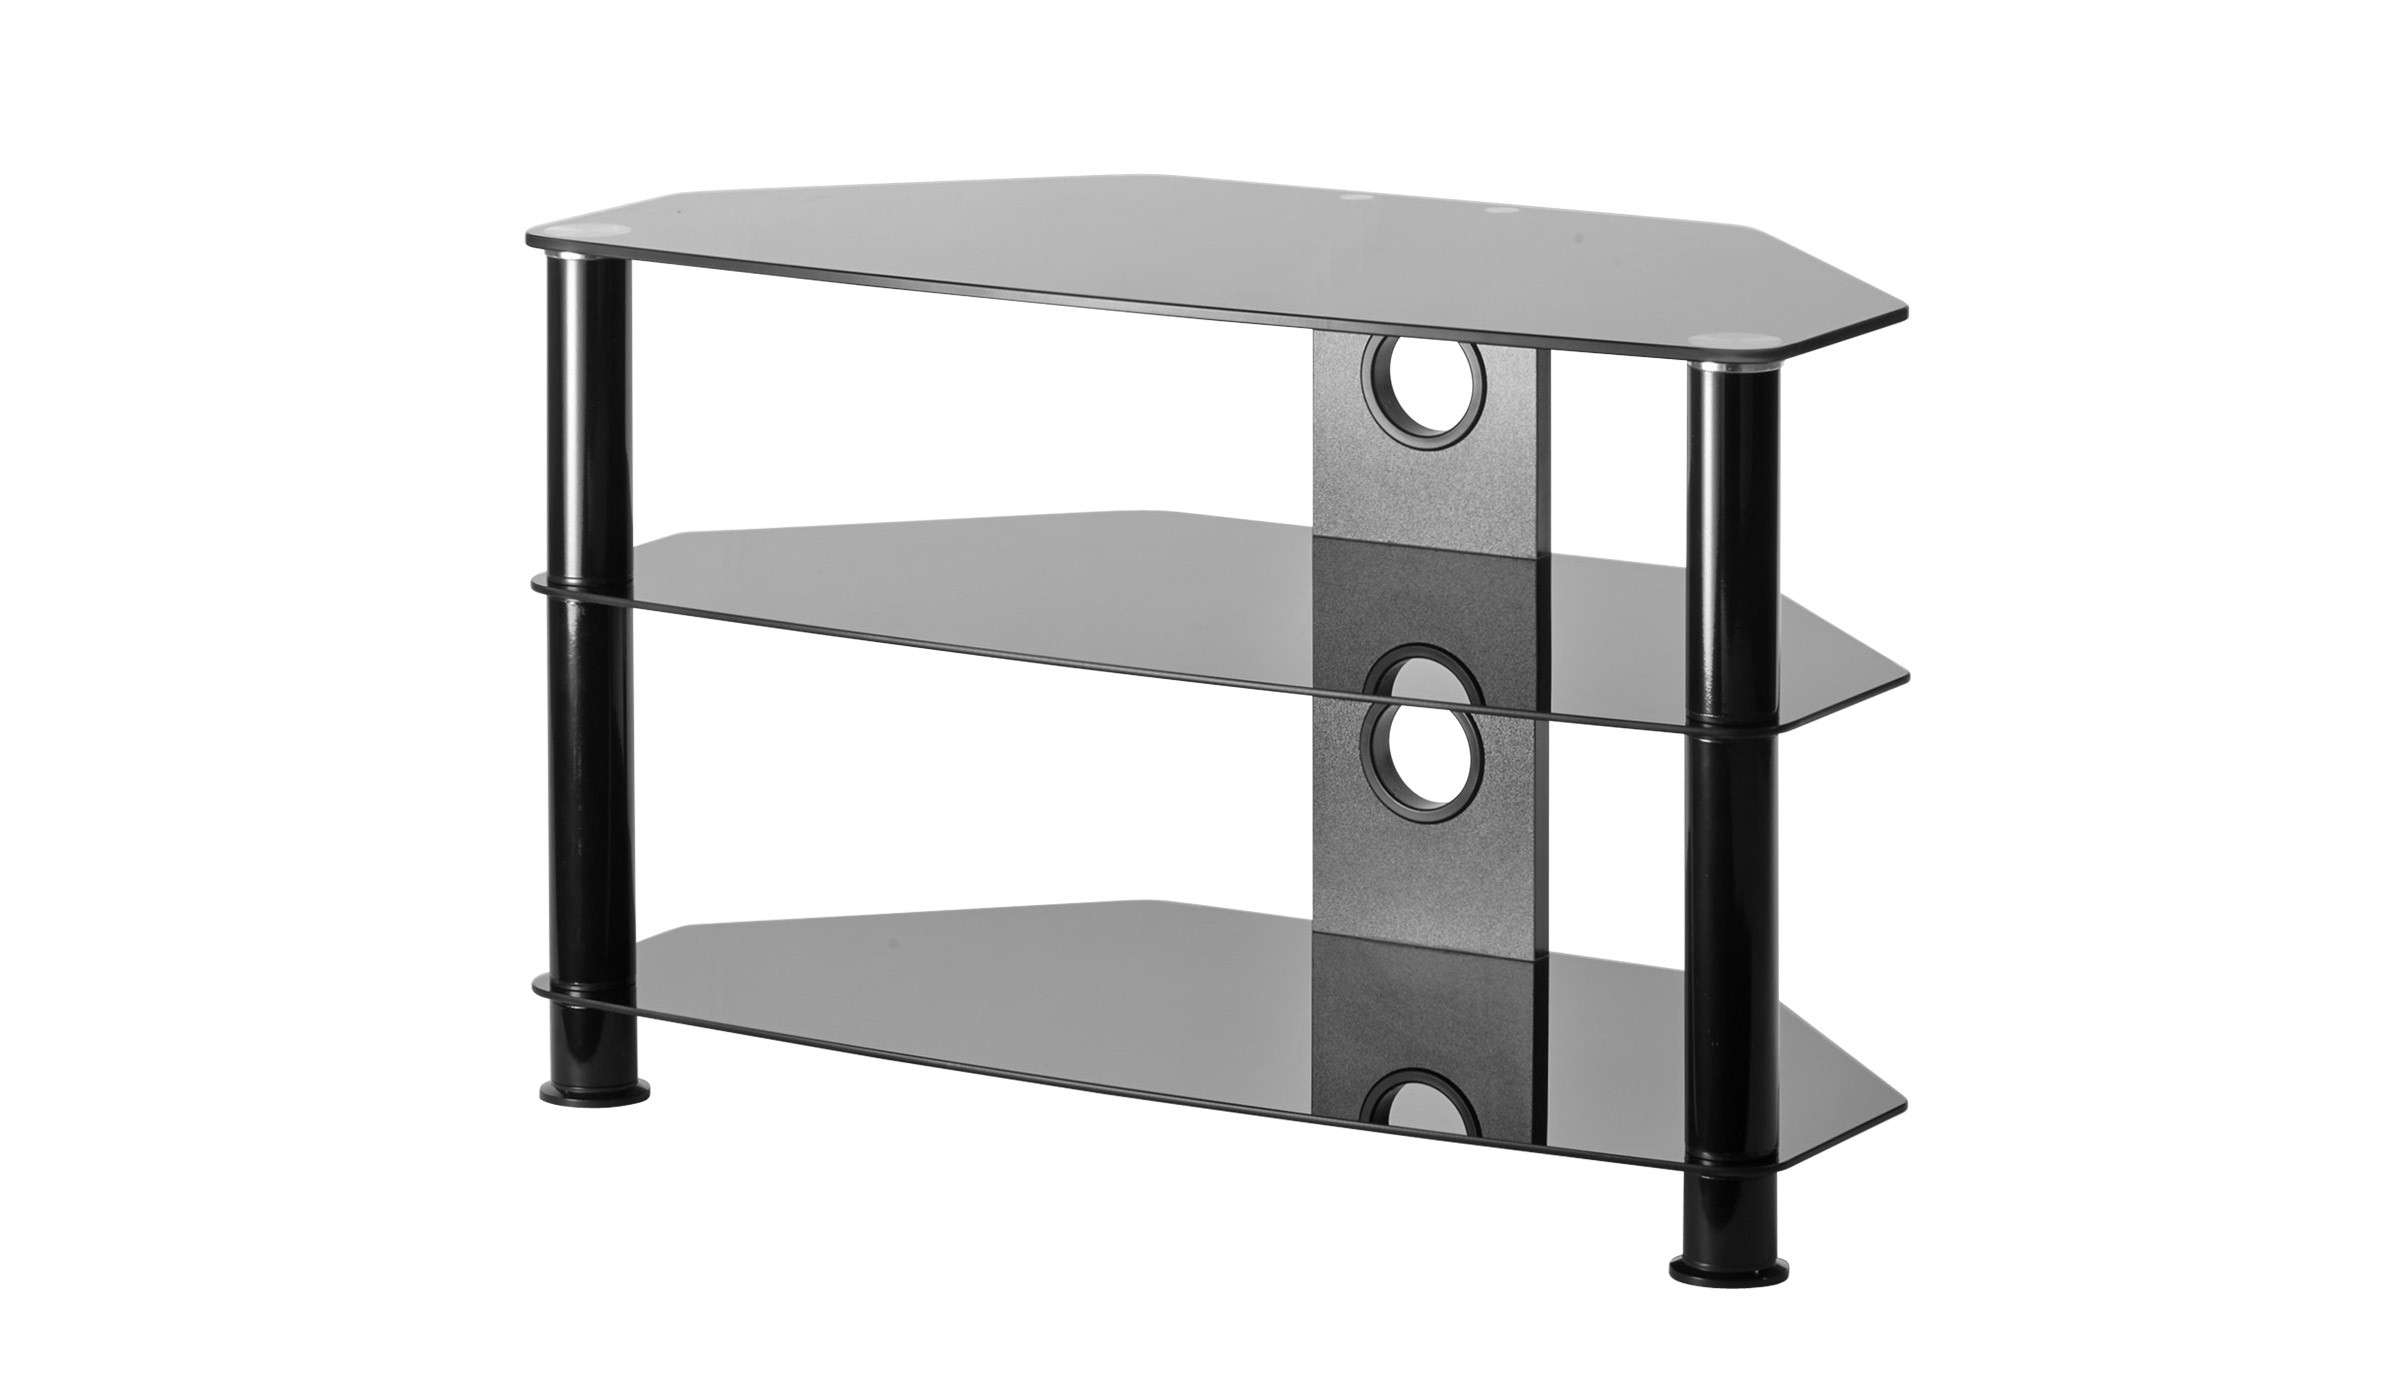 Black Glass Corner Tv Stand Up To 37 Inch Tv | Mmt Db800 Intended For Black Glass Tv Stands (View 7 of 15)